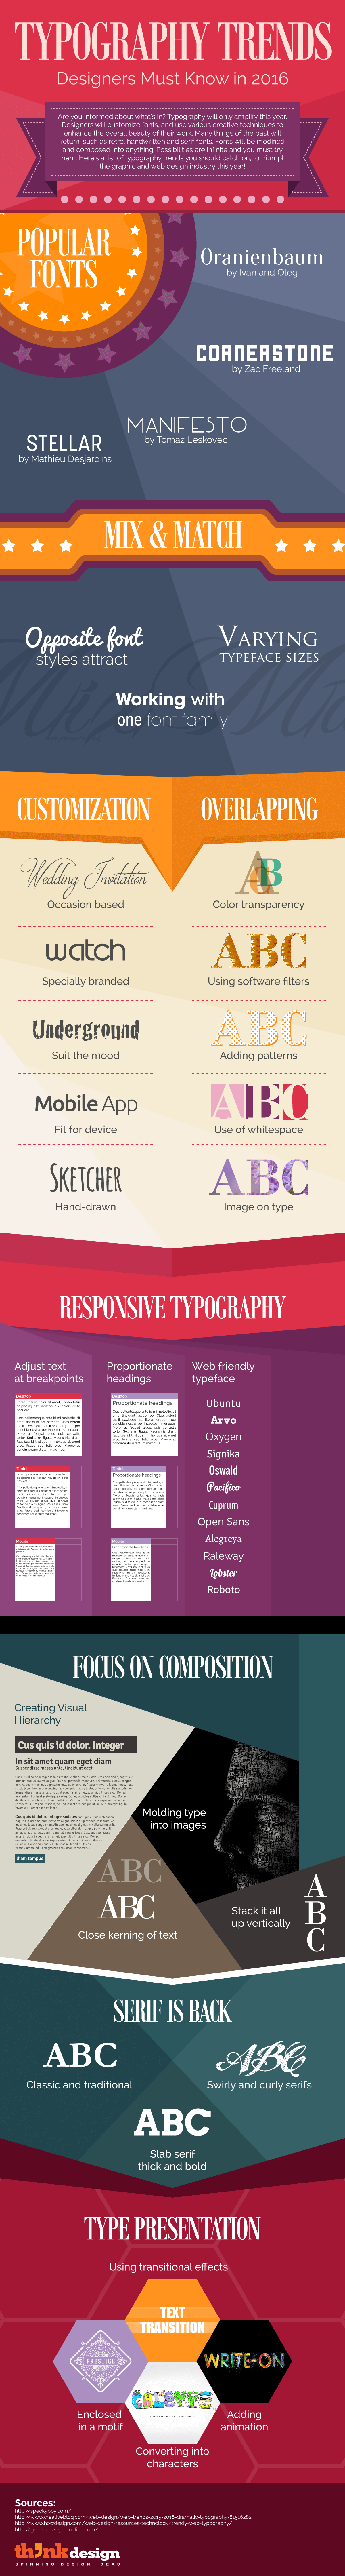 typography-trends-infographic.png